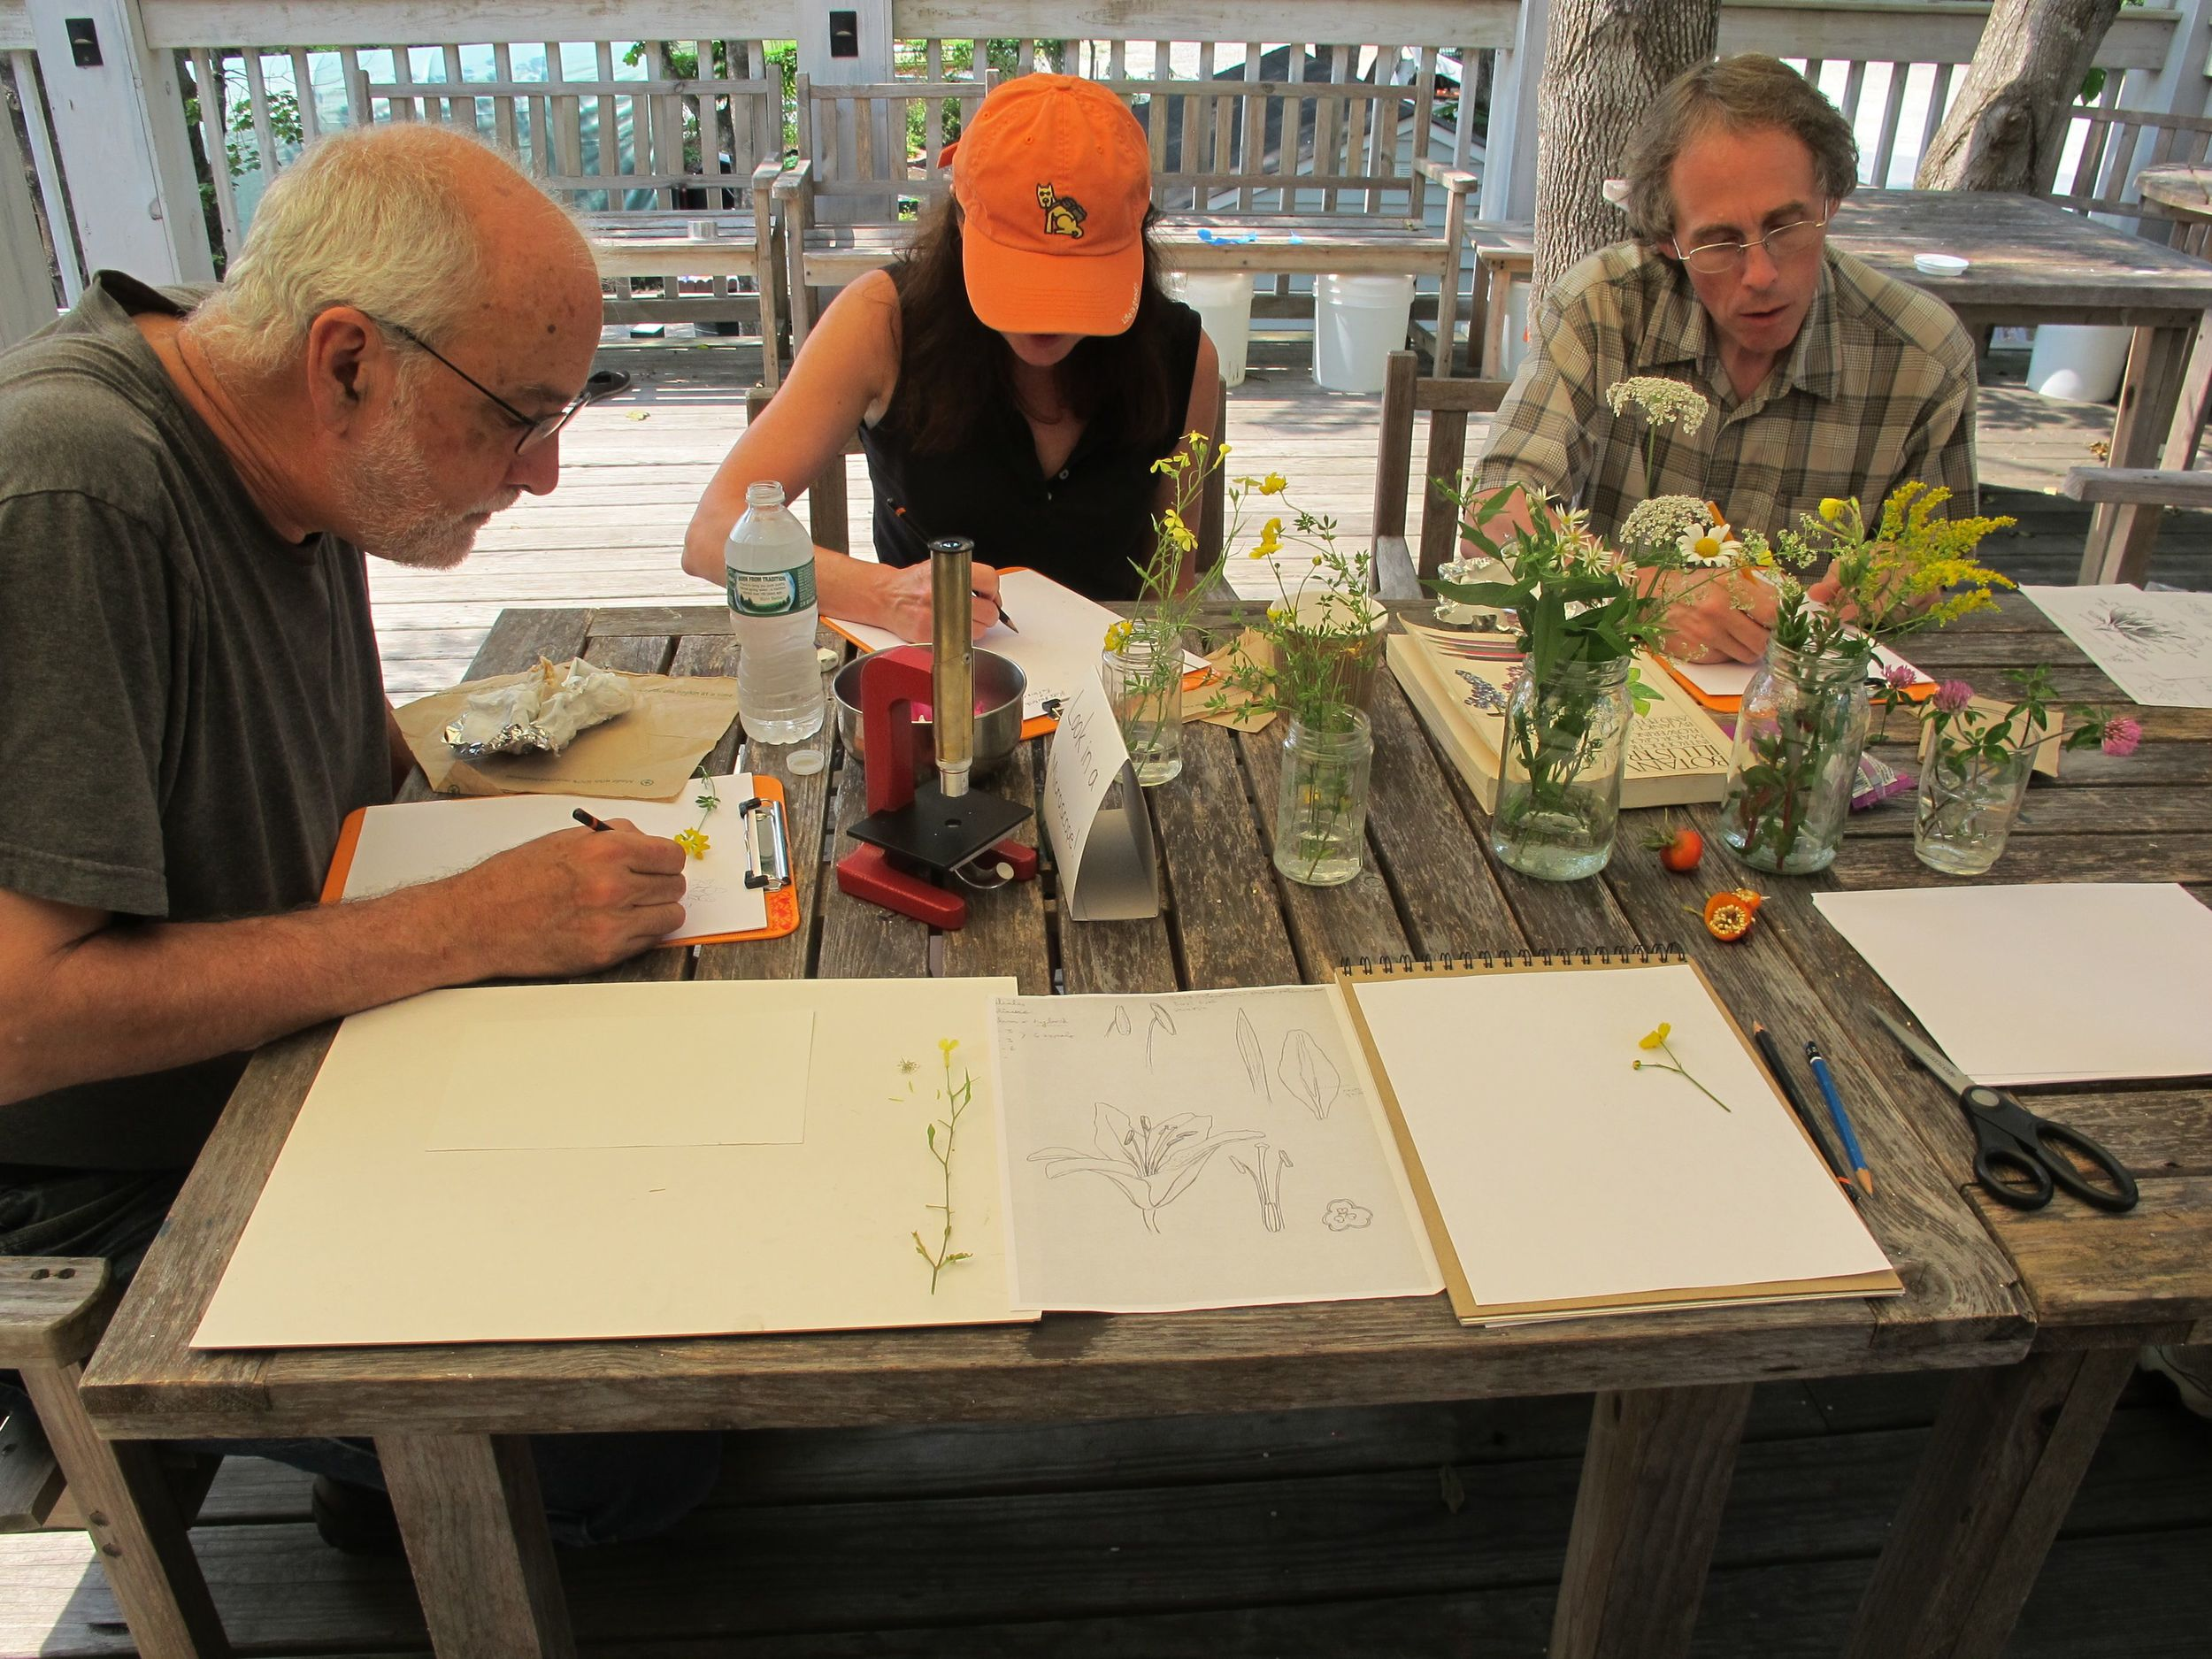 Pamelia and I and animation genius Dan McCoy of Pixar took part in one of Amy's botanical drawing workshops last summer. Her class is for all ages!